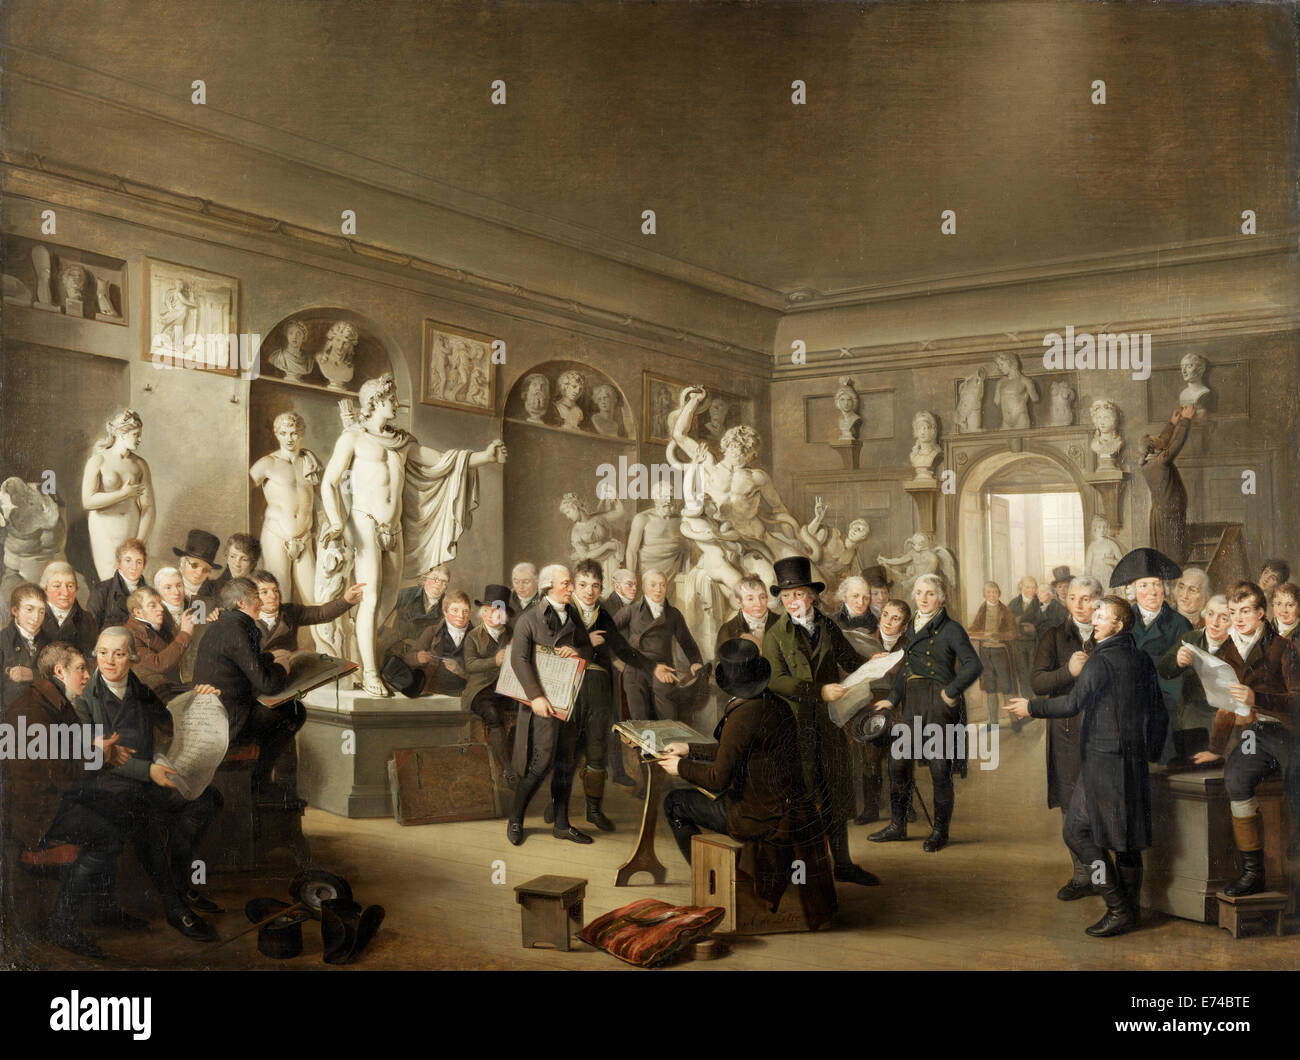 The Sculpture Gallery of the Felix Meritis Society - by Adriaan de Lelie, 1806 - 1809 - Stock Image